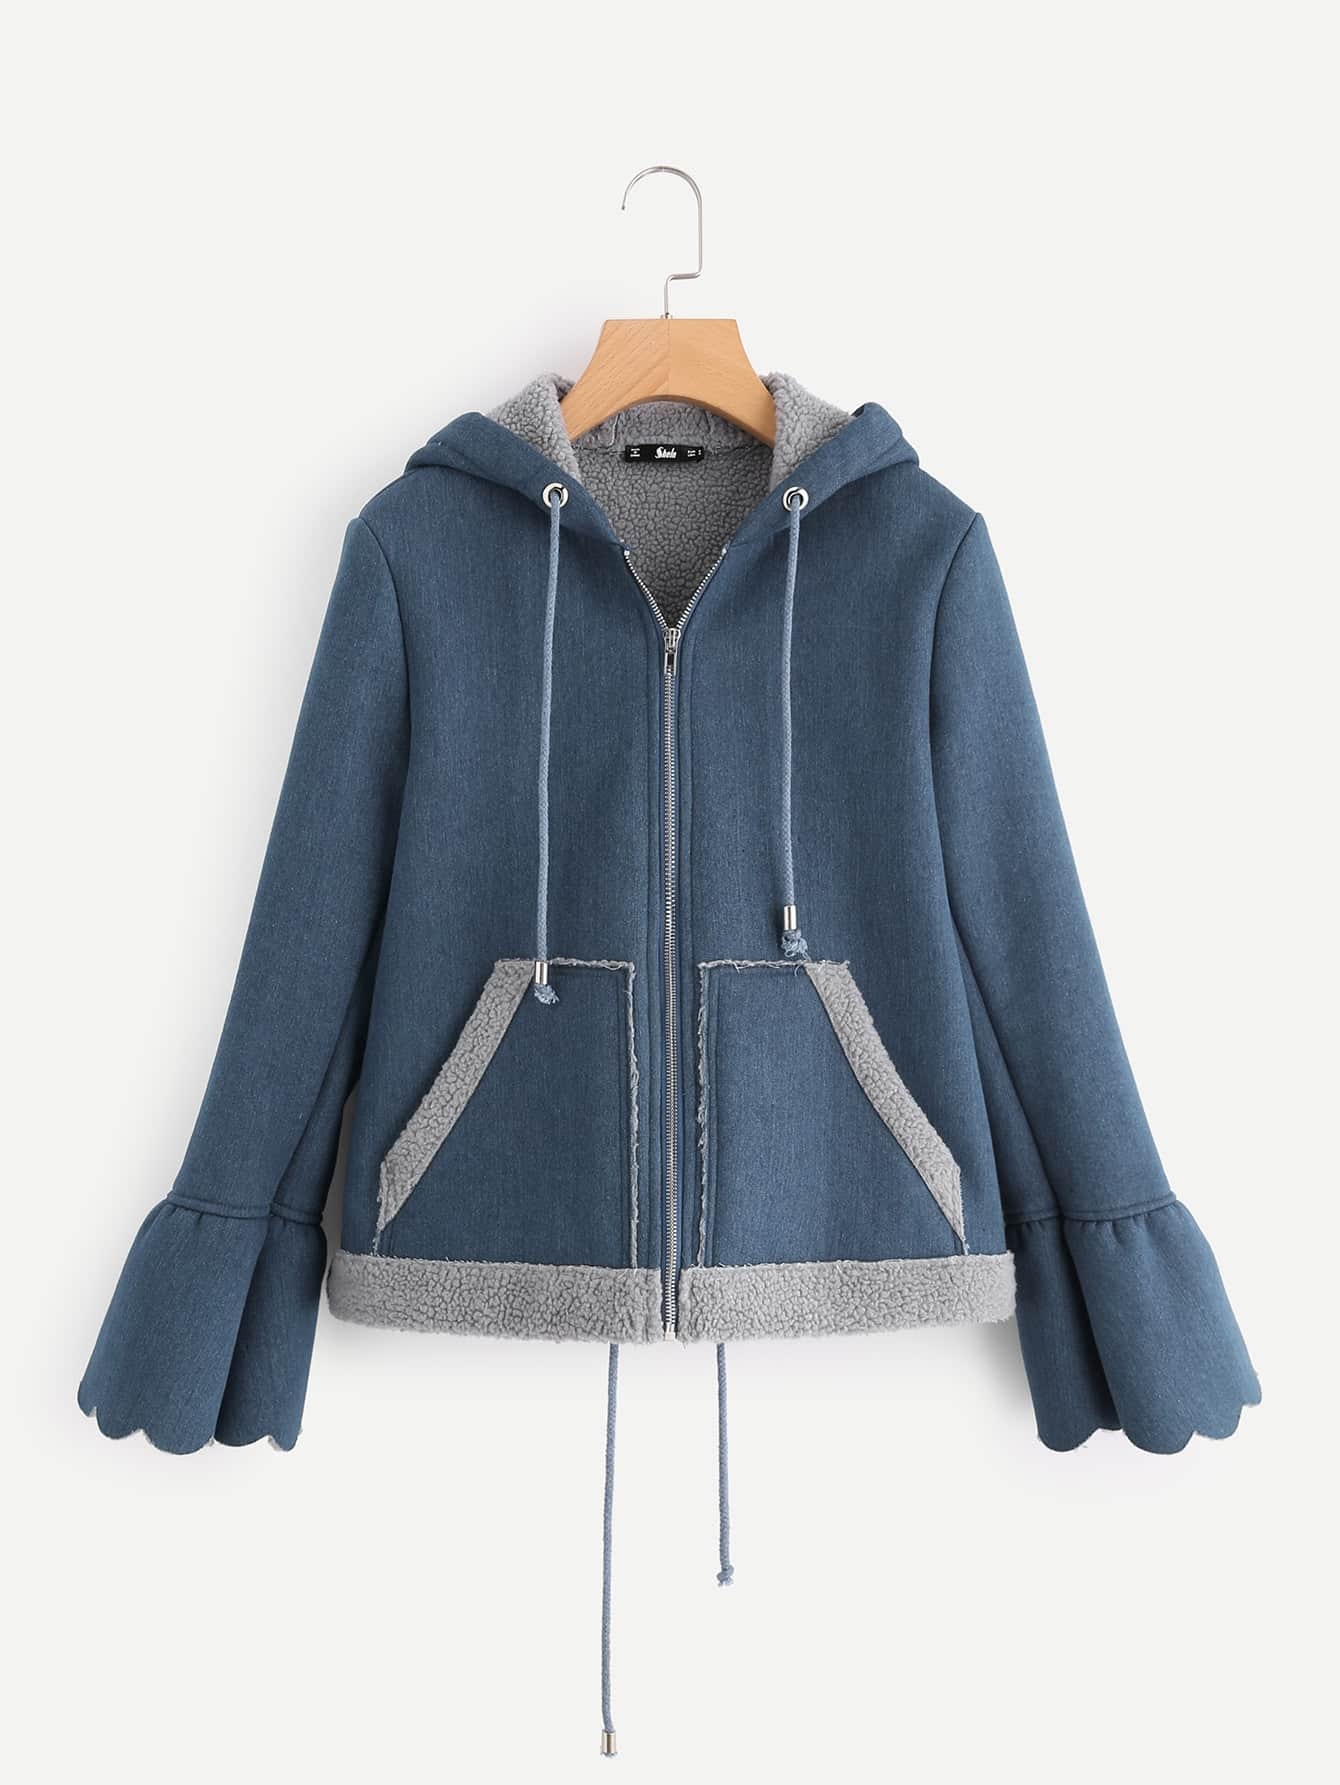 Scallop Bell Cuff Fleece Lined Hoodie Jacket jacket170816703